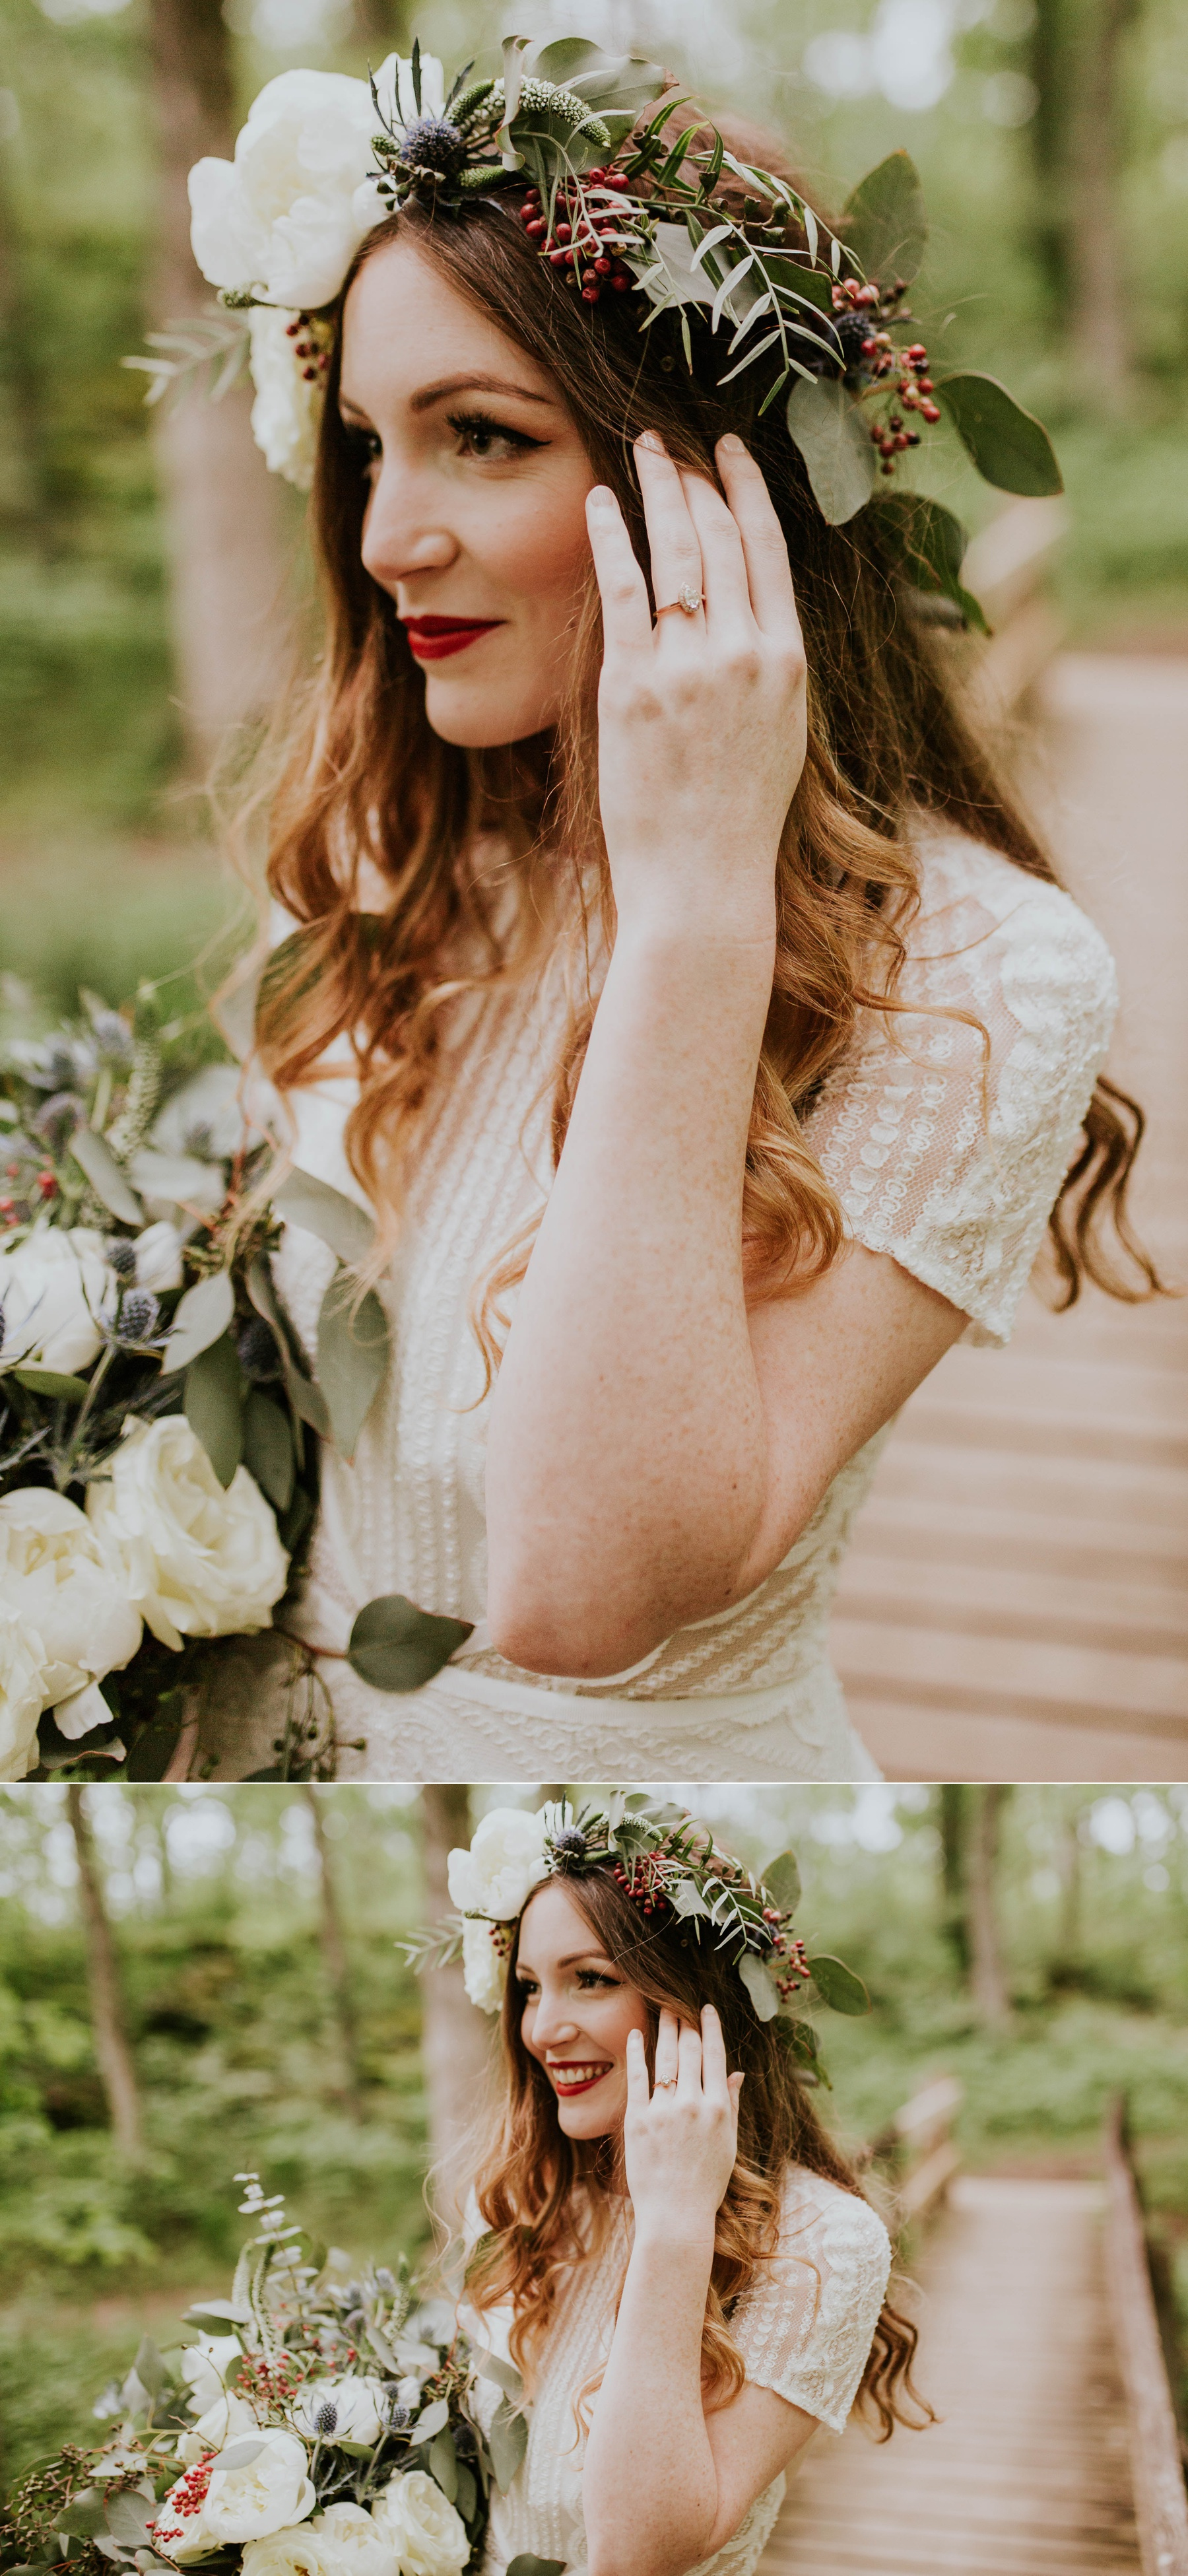 ThroughVictoriasLens_CedarsOfLebanon_Bridals11.jpg